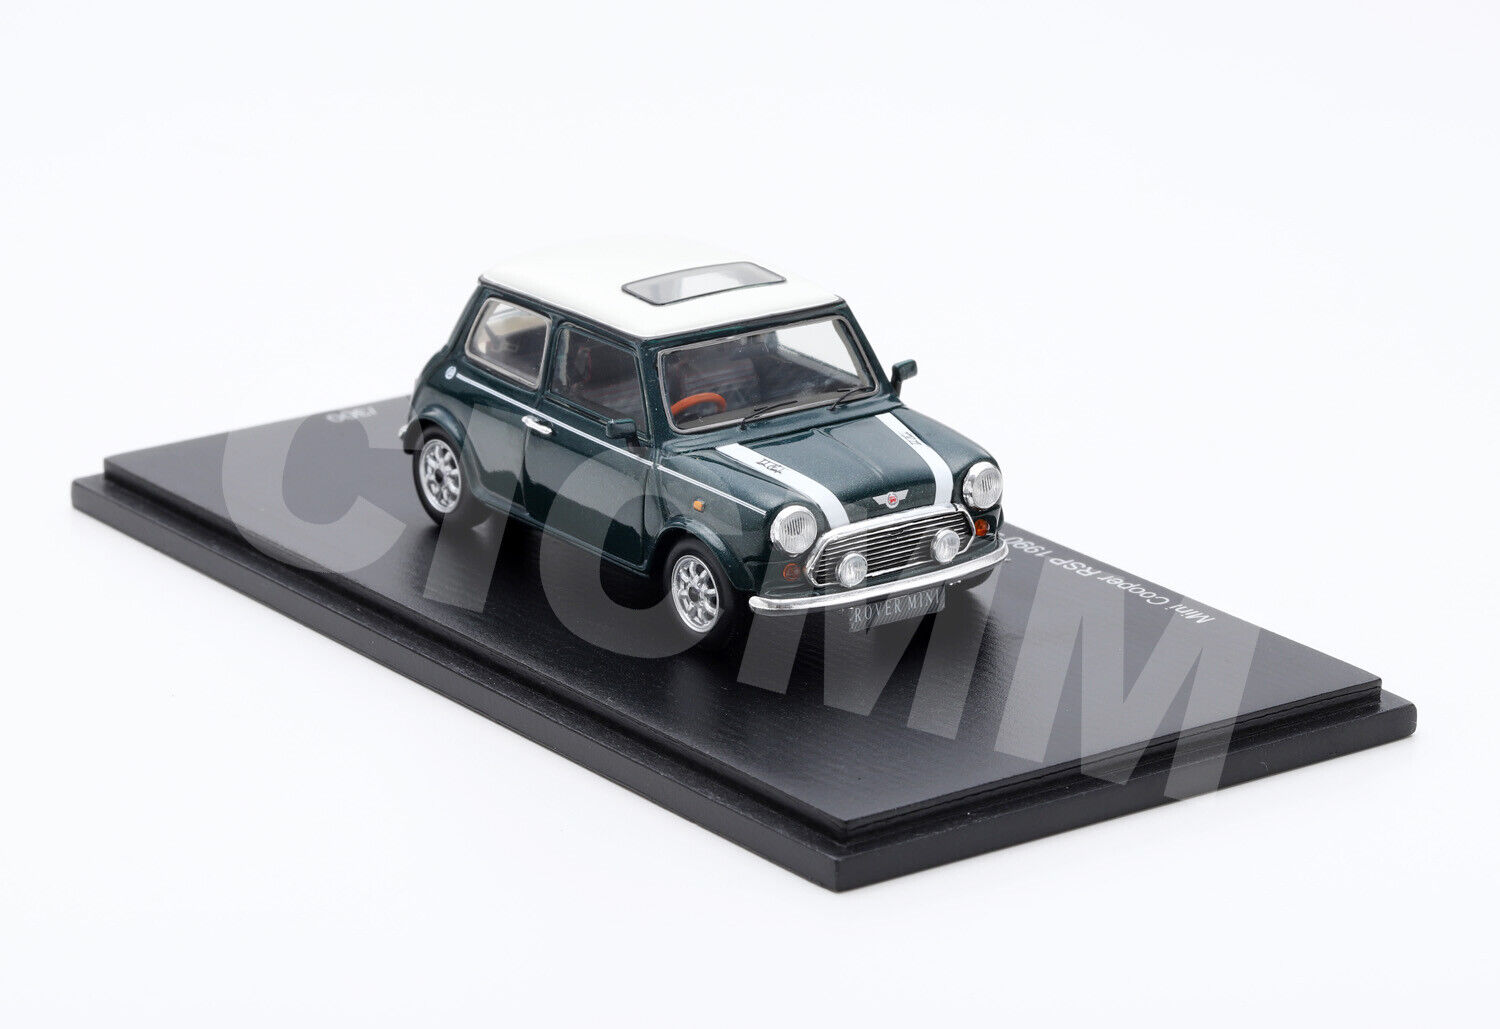 SPARK ROVER  MINI COOPER RSP Rover Special Product 1990 1 43 Ed Limitée CICMM  offrant 100%